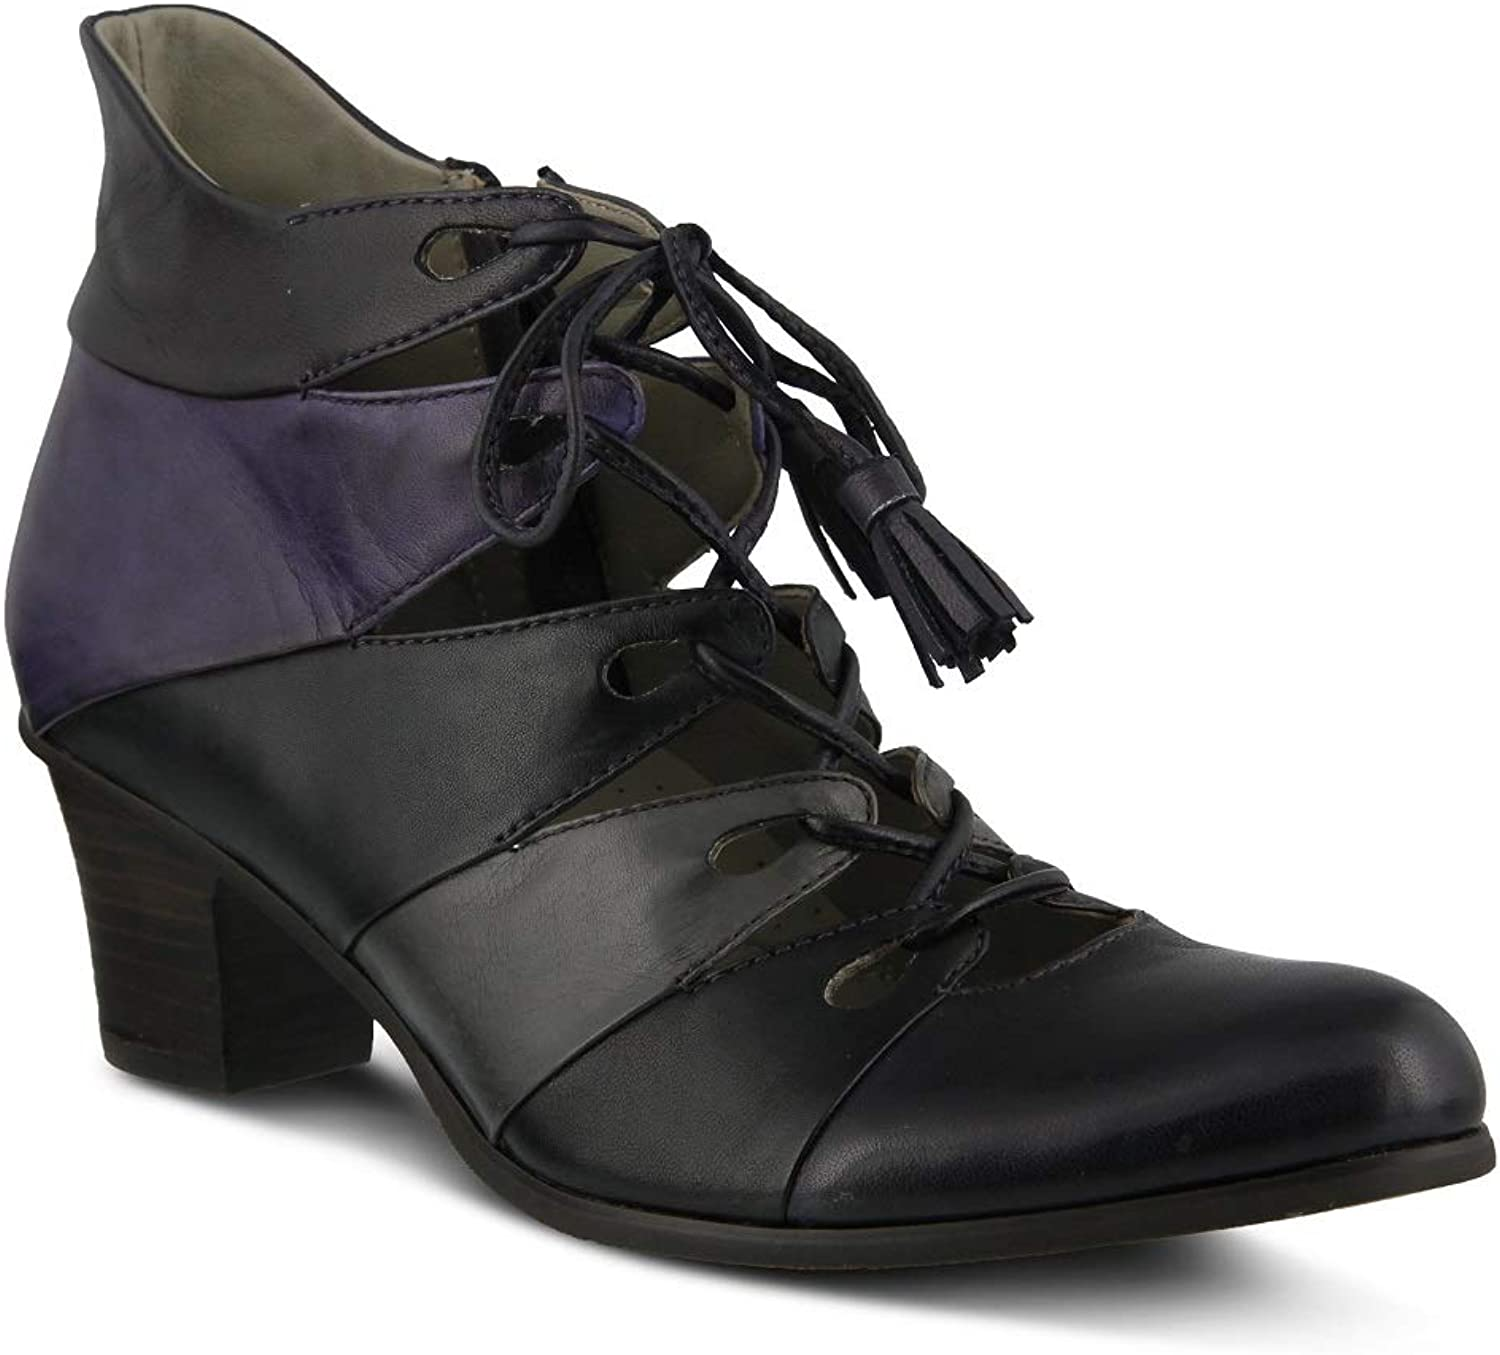 Spring Step Women's Estrela shoes   color Purple   Leather shoes